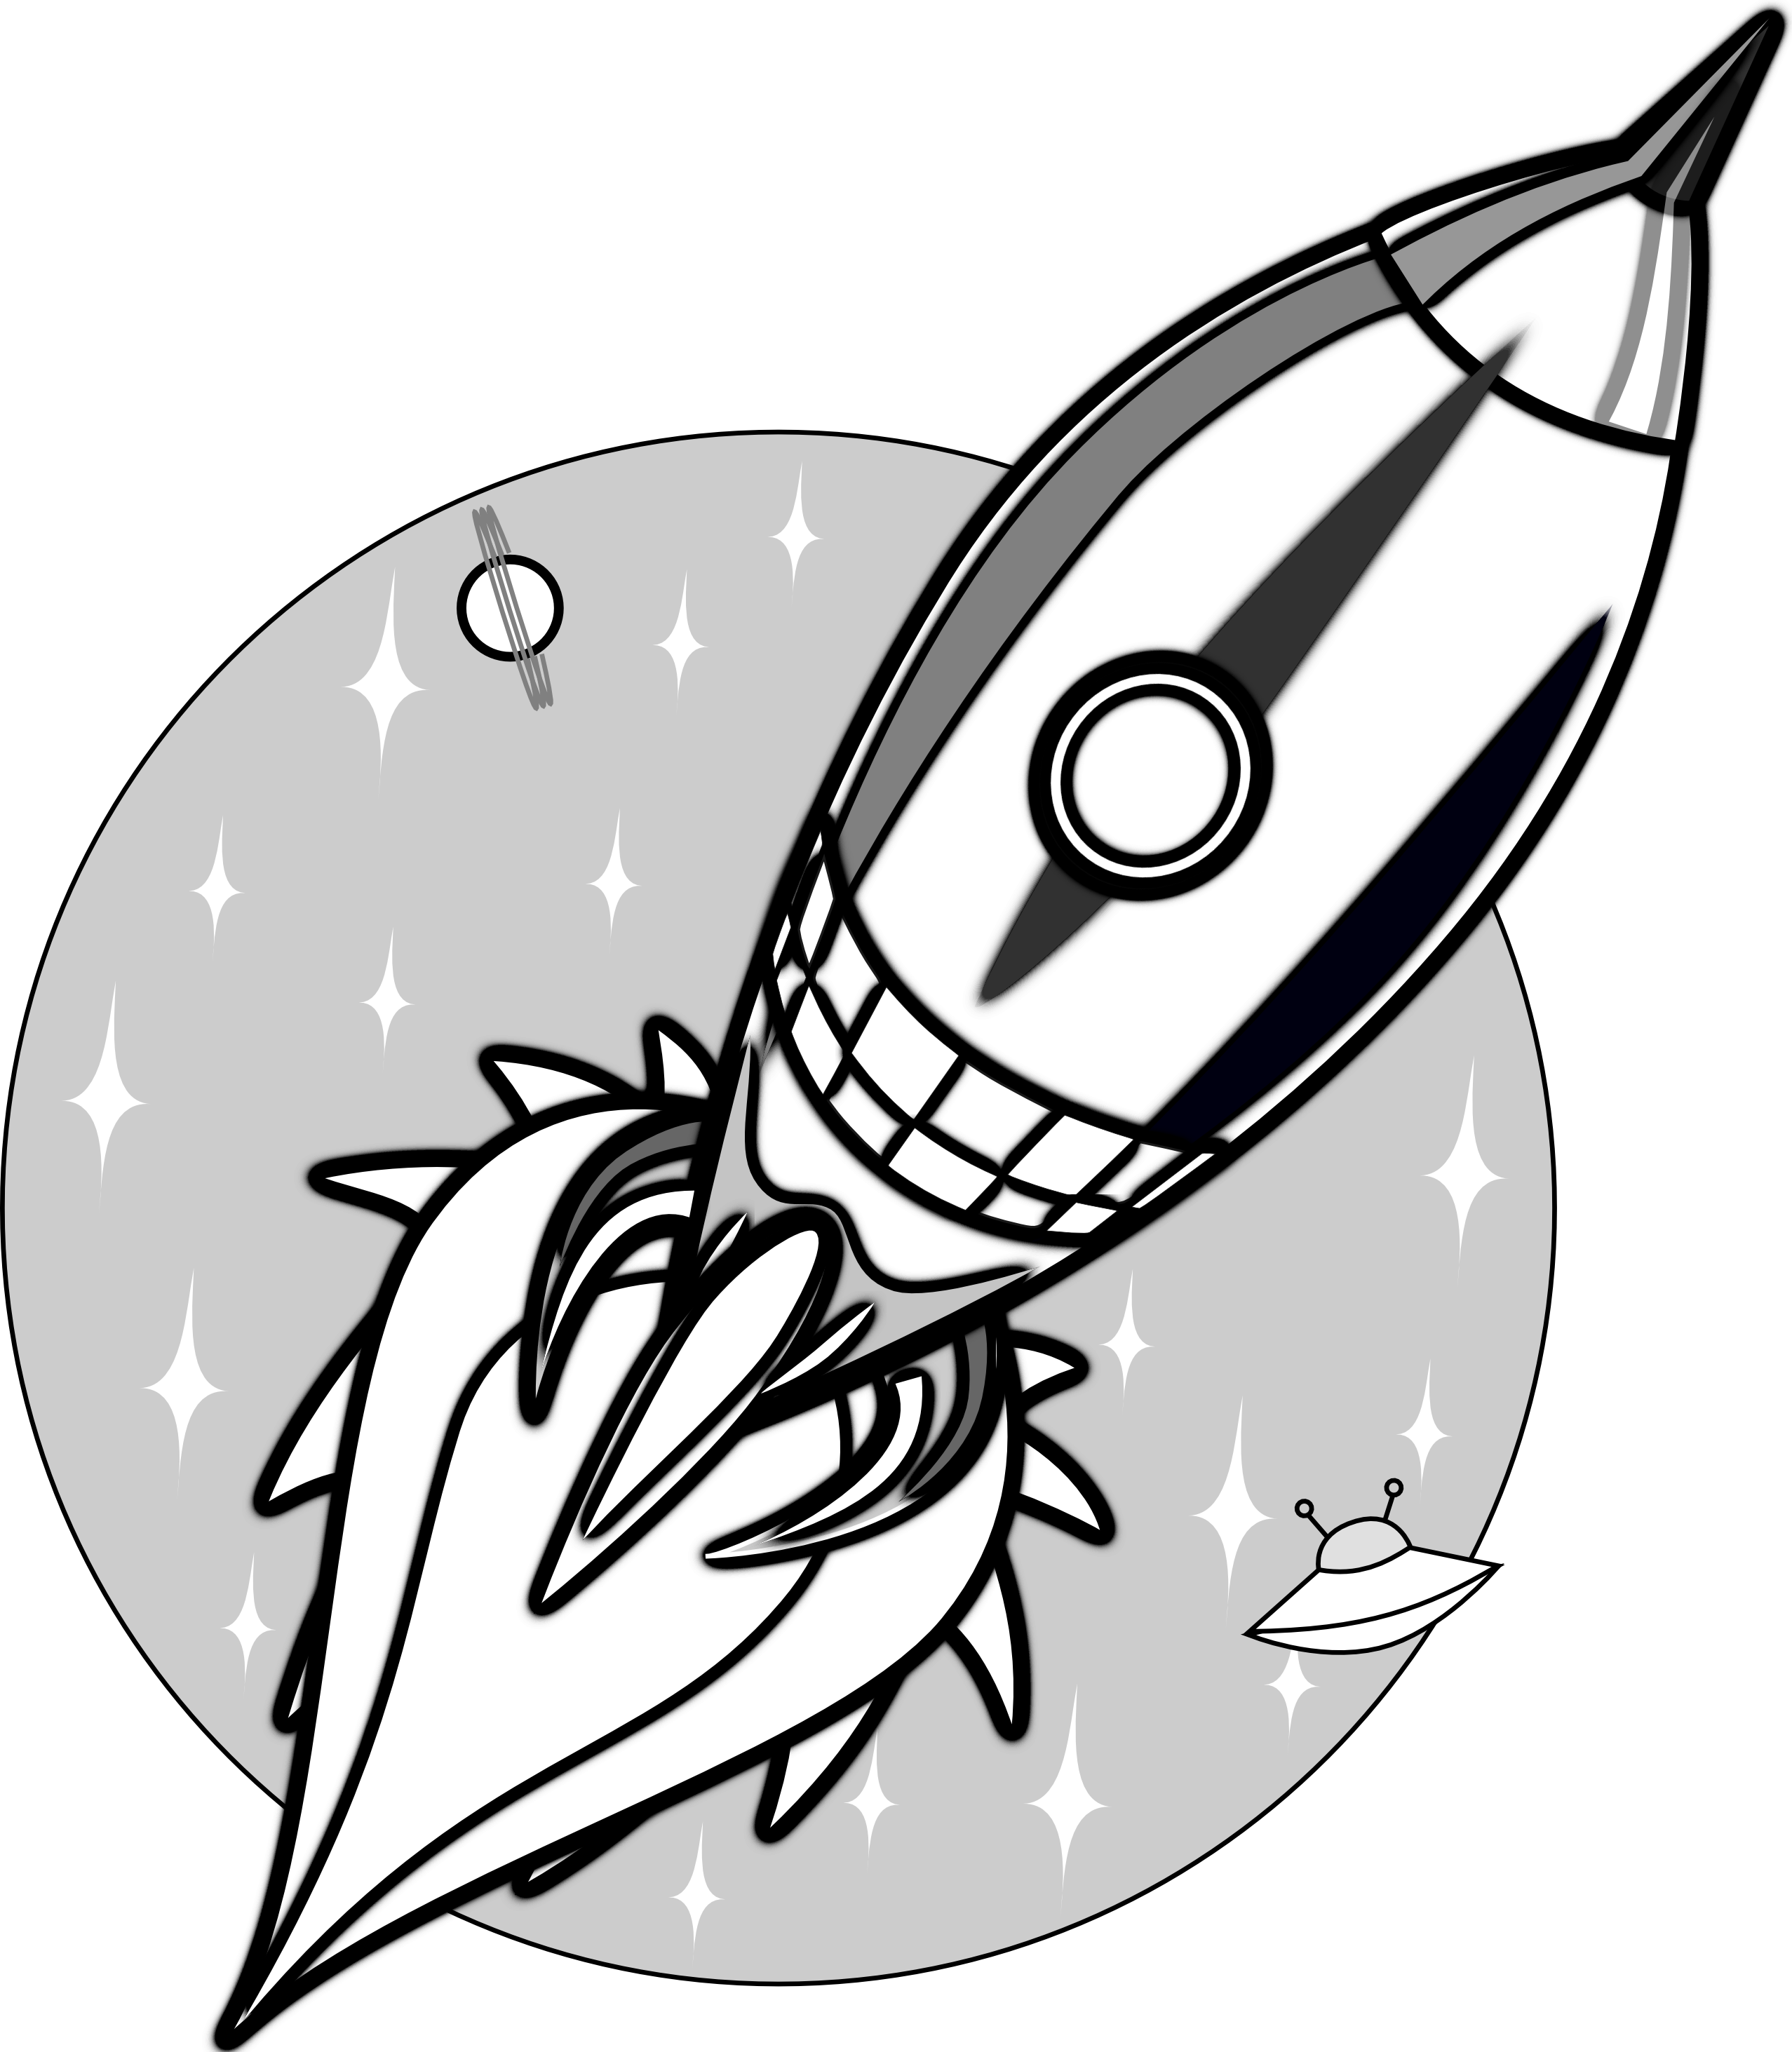 Rocket line drawing at. Spaceship clipart guardians the galaxy